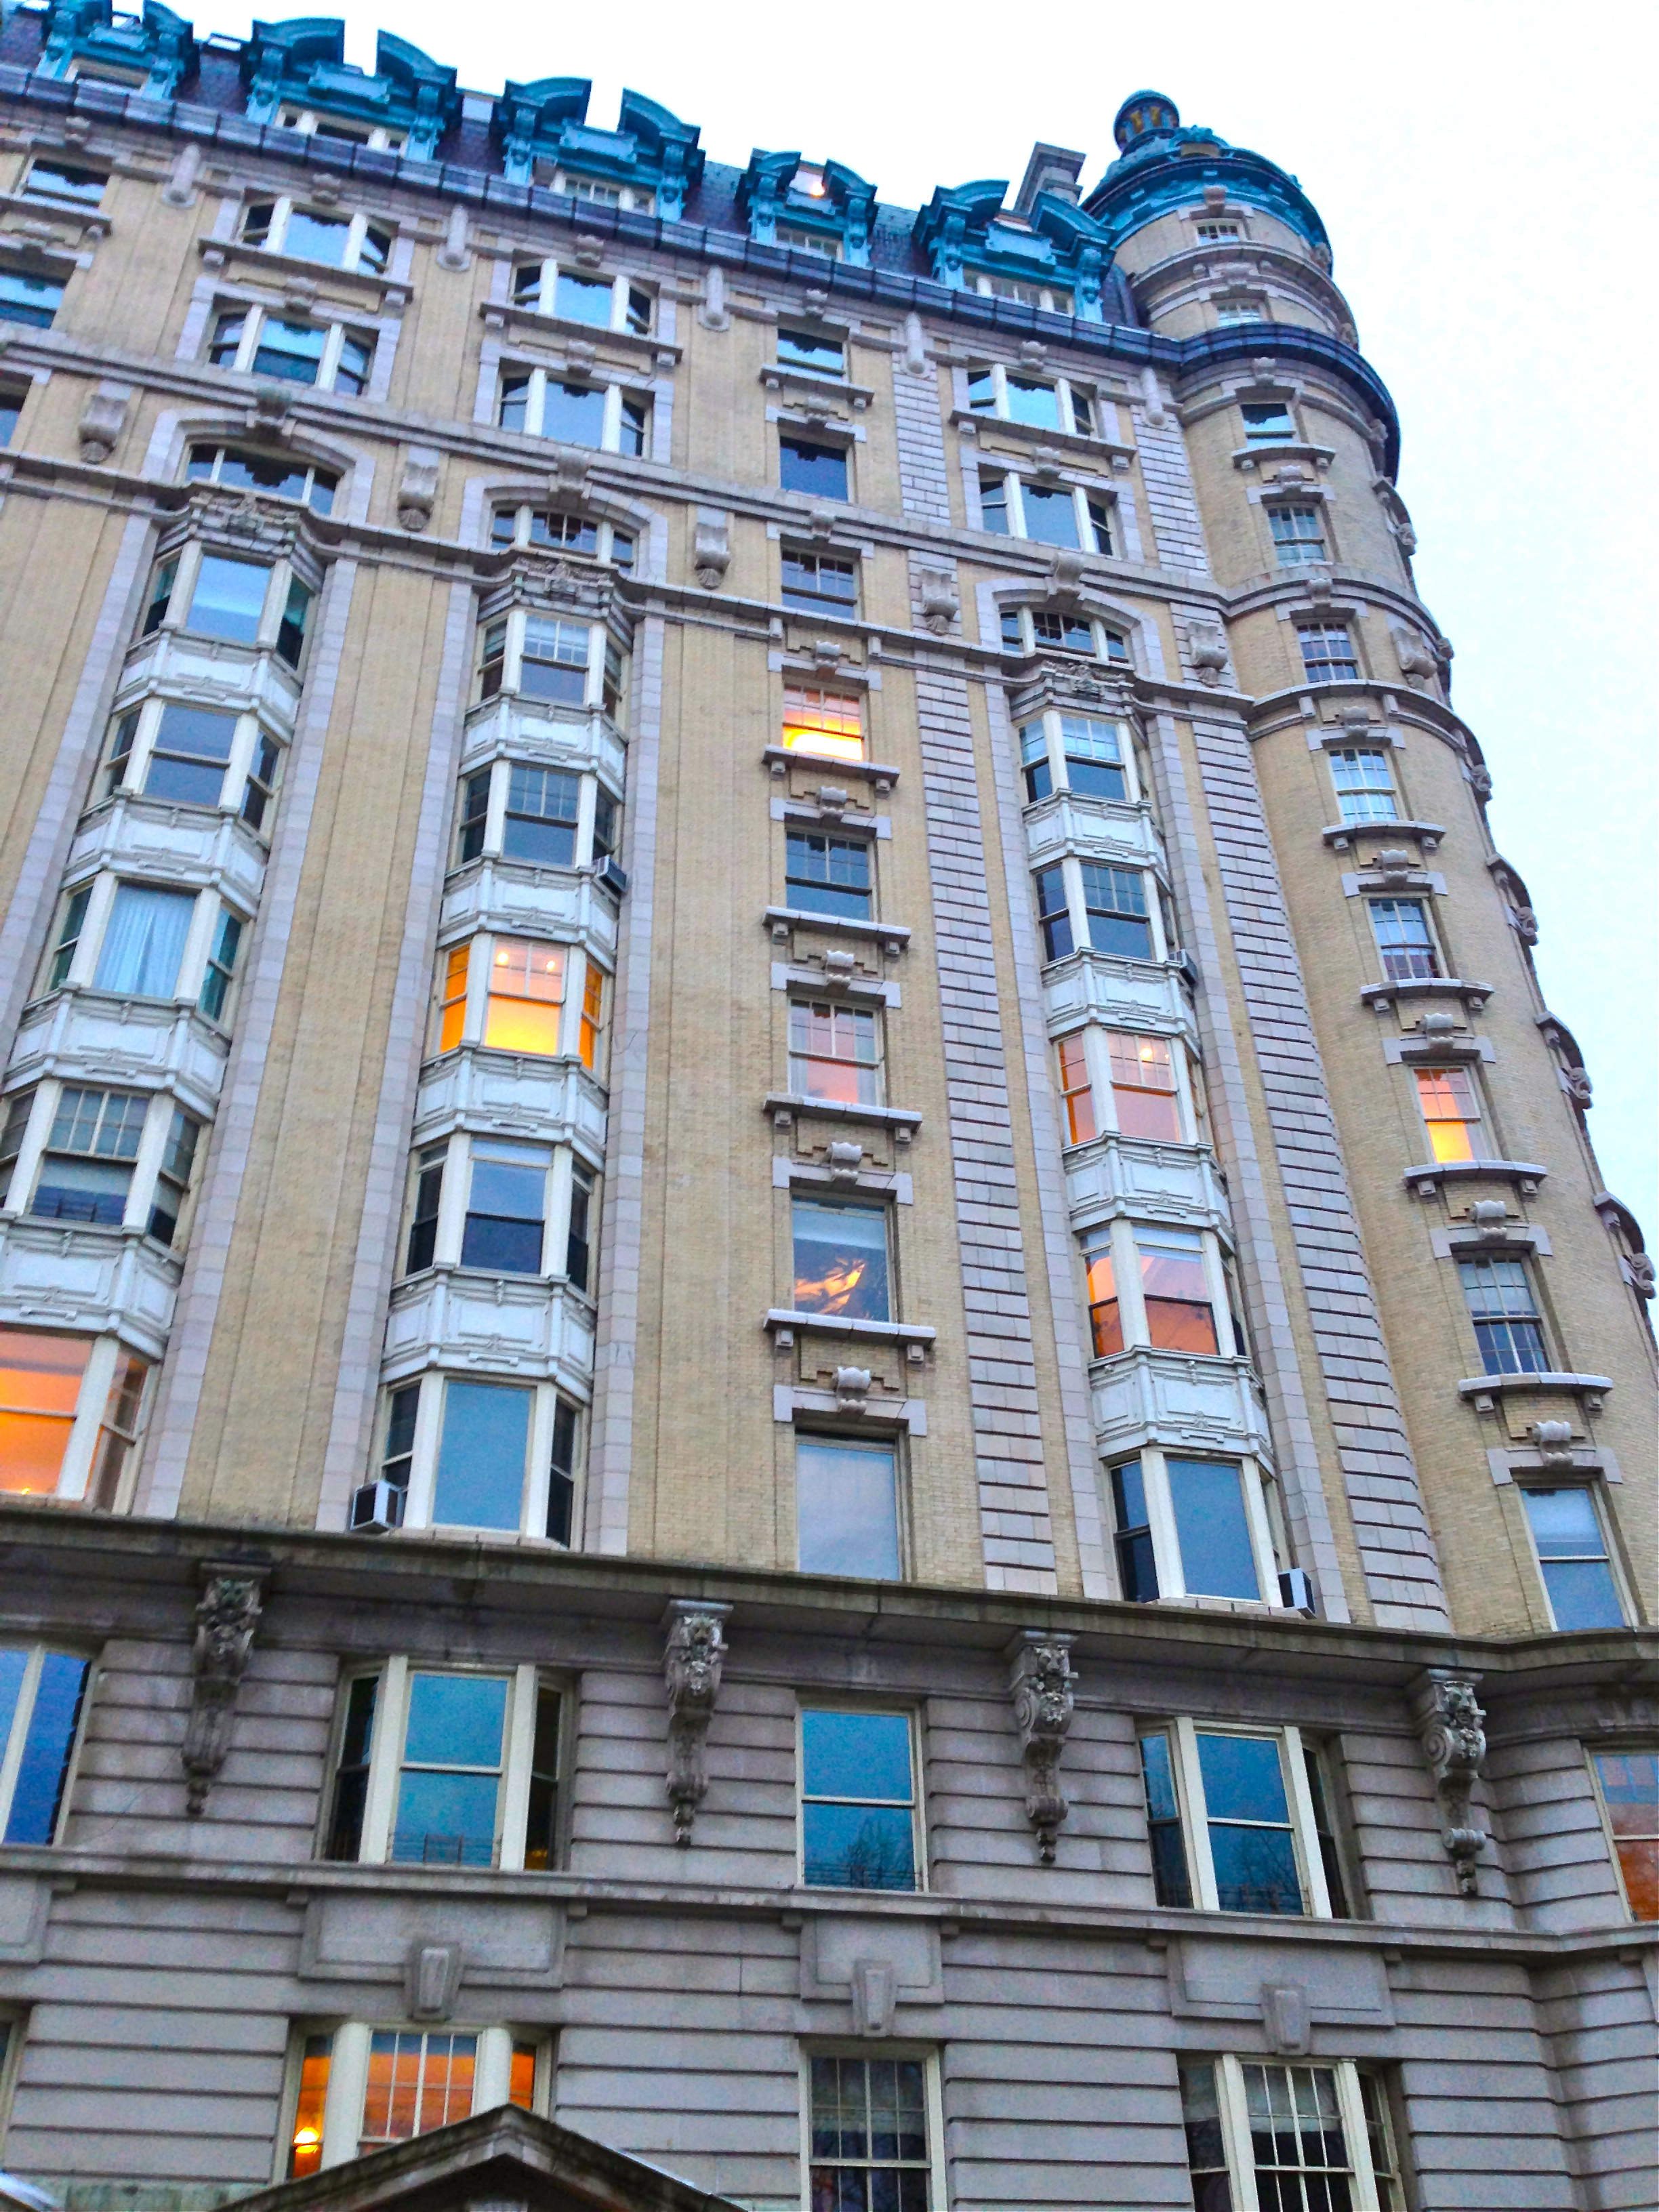 first apartment buildings New York | Ephemeral New York